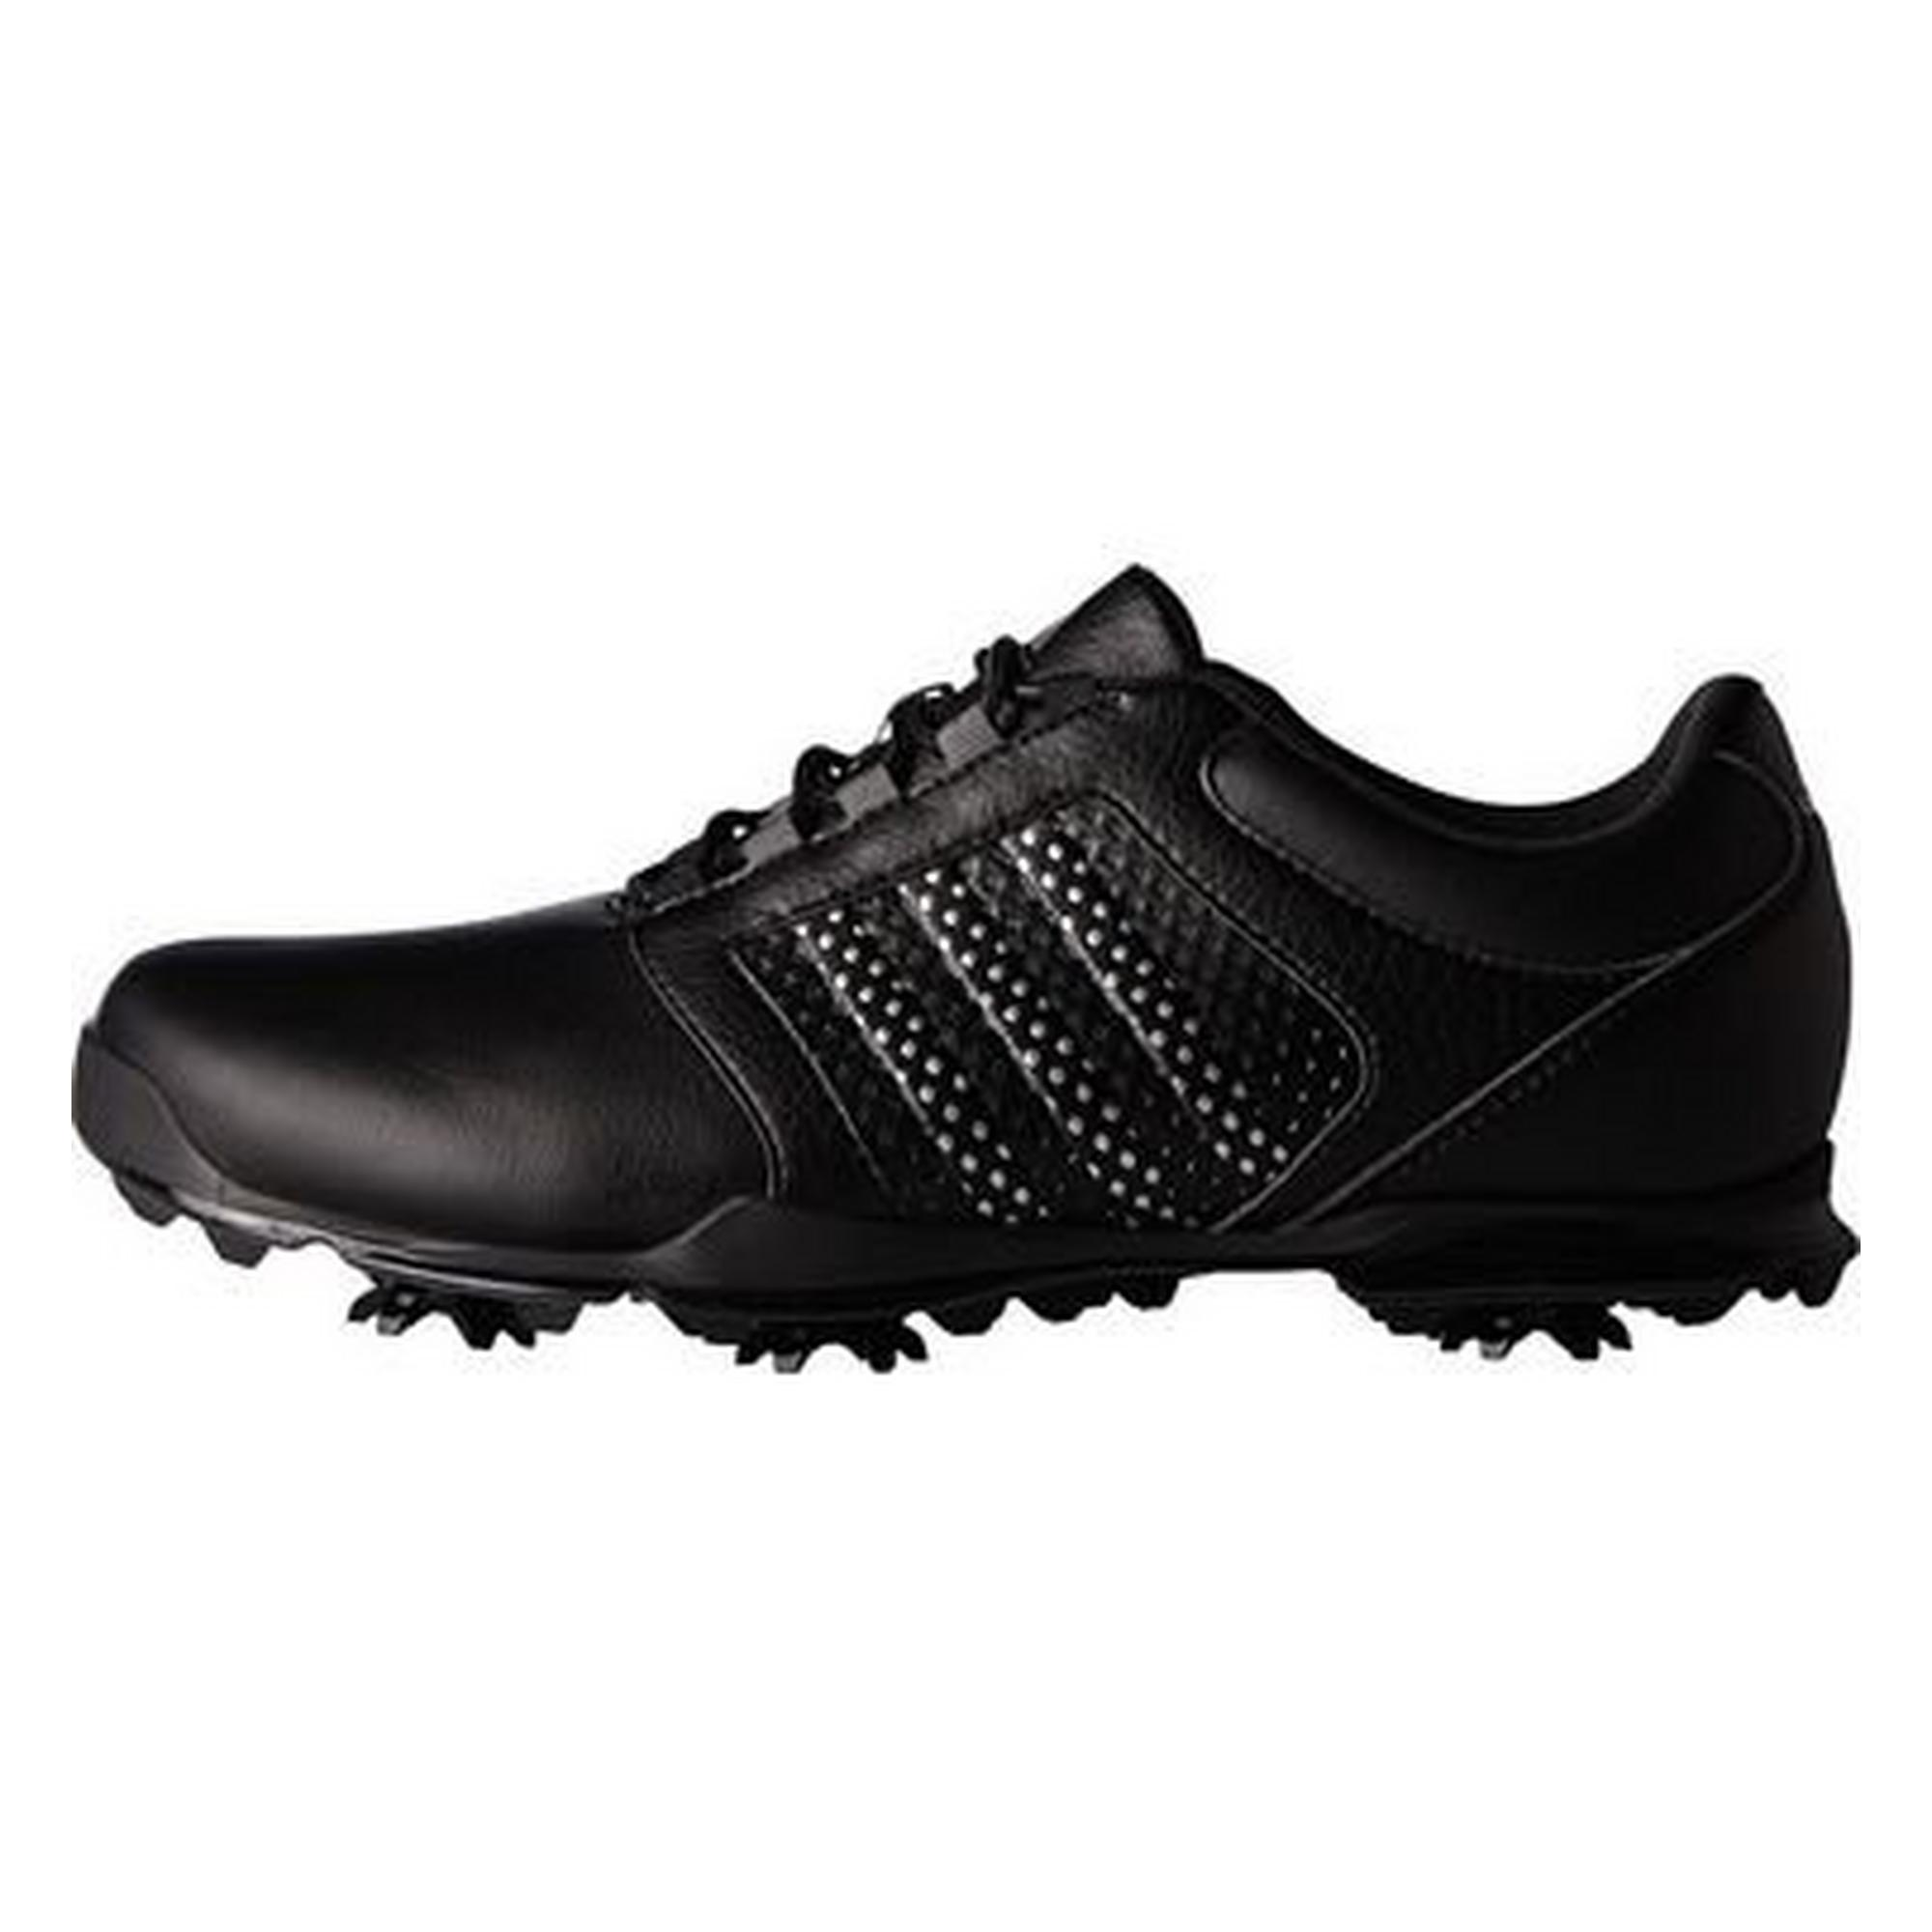 Women's Adipure Tour Spiked Golf Shoe